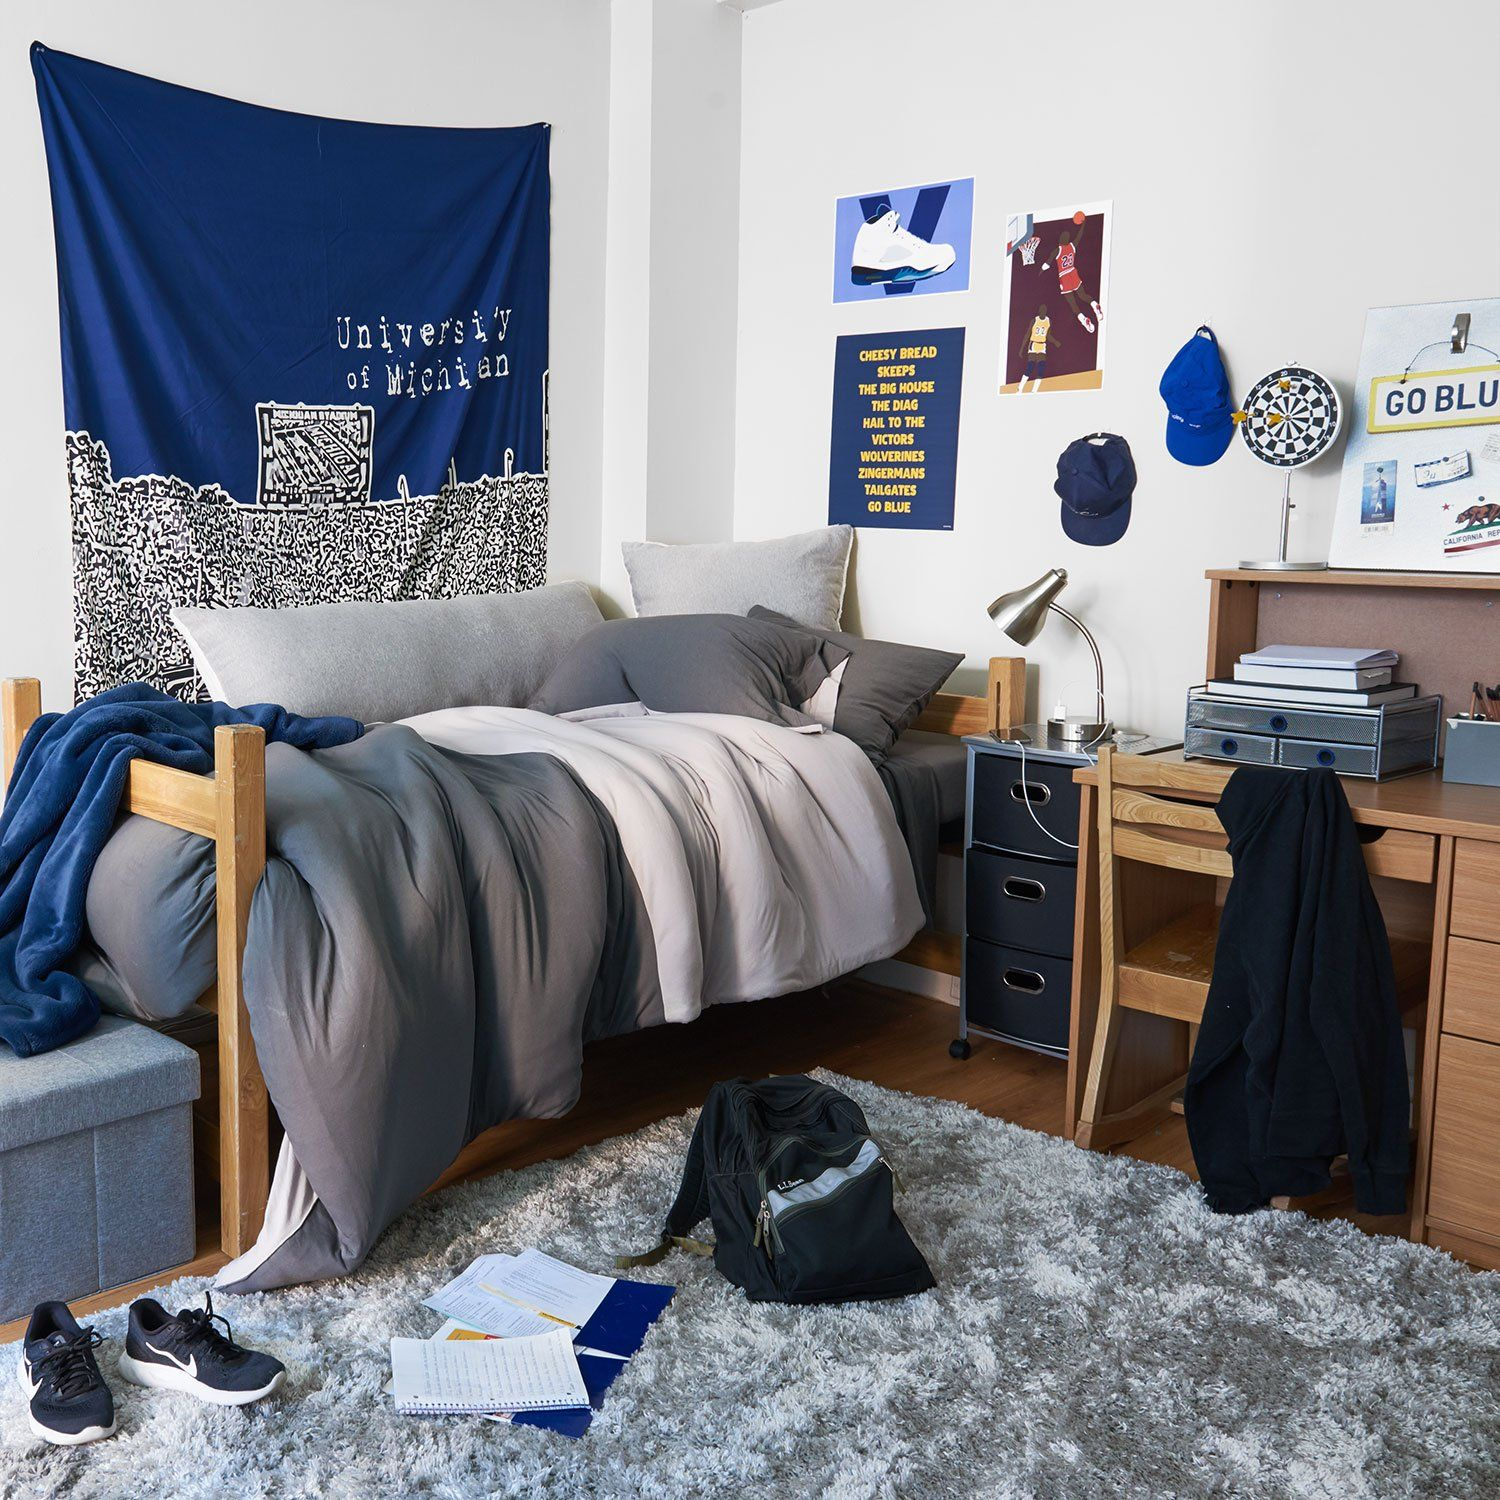 Best Room Ideas For Guys Guys Dorm Room Ideas Dormify 640 x 480